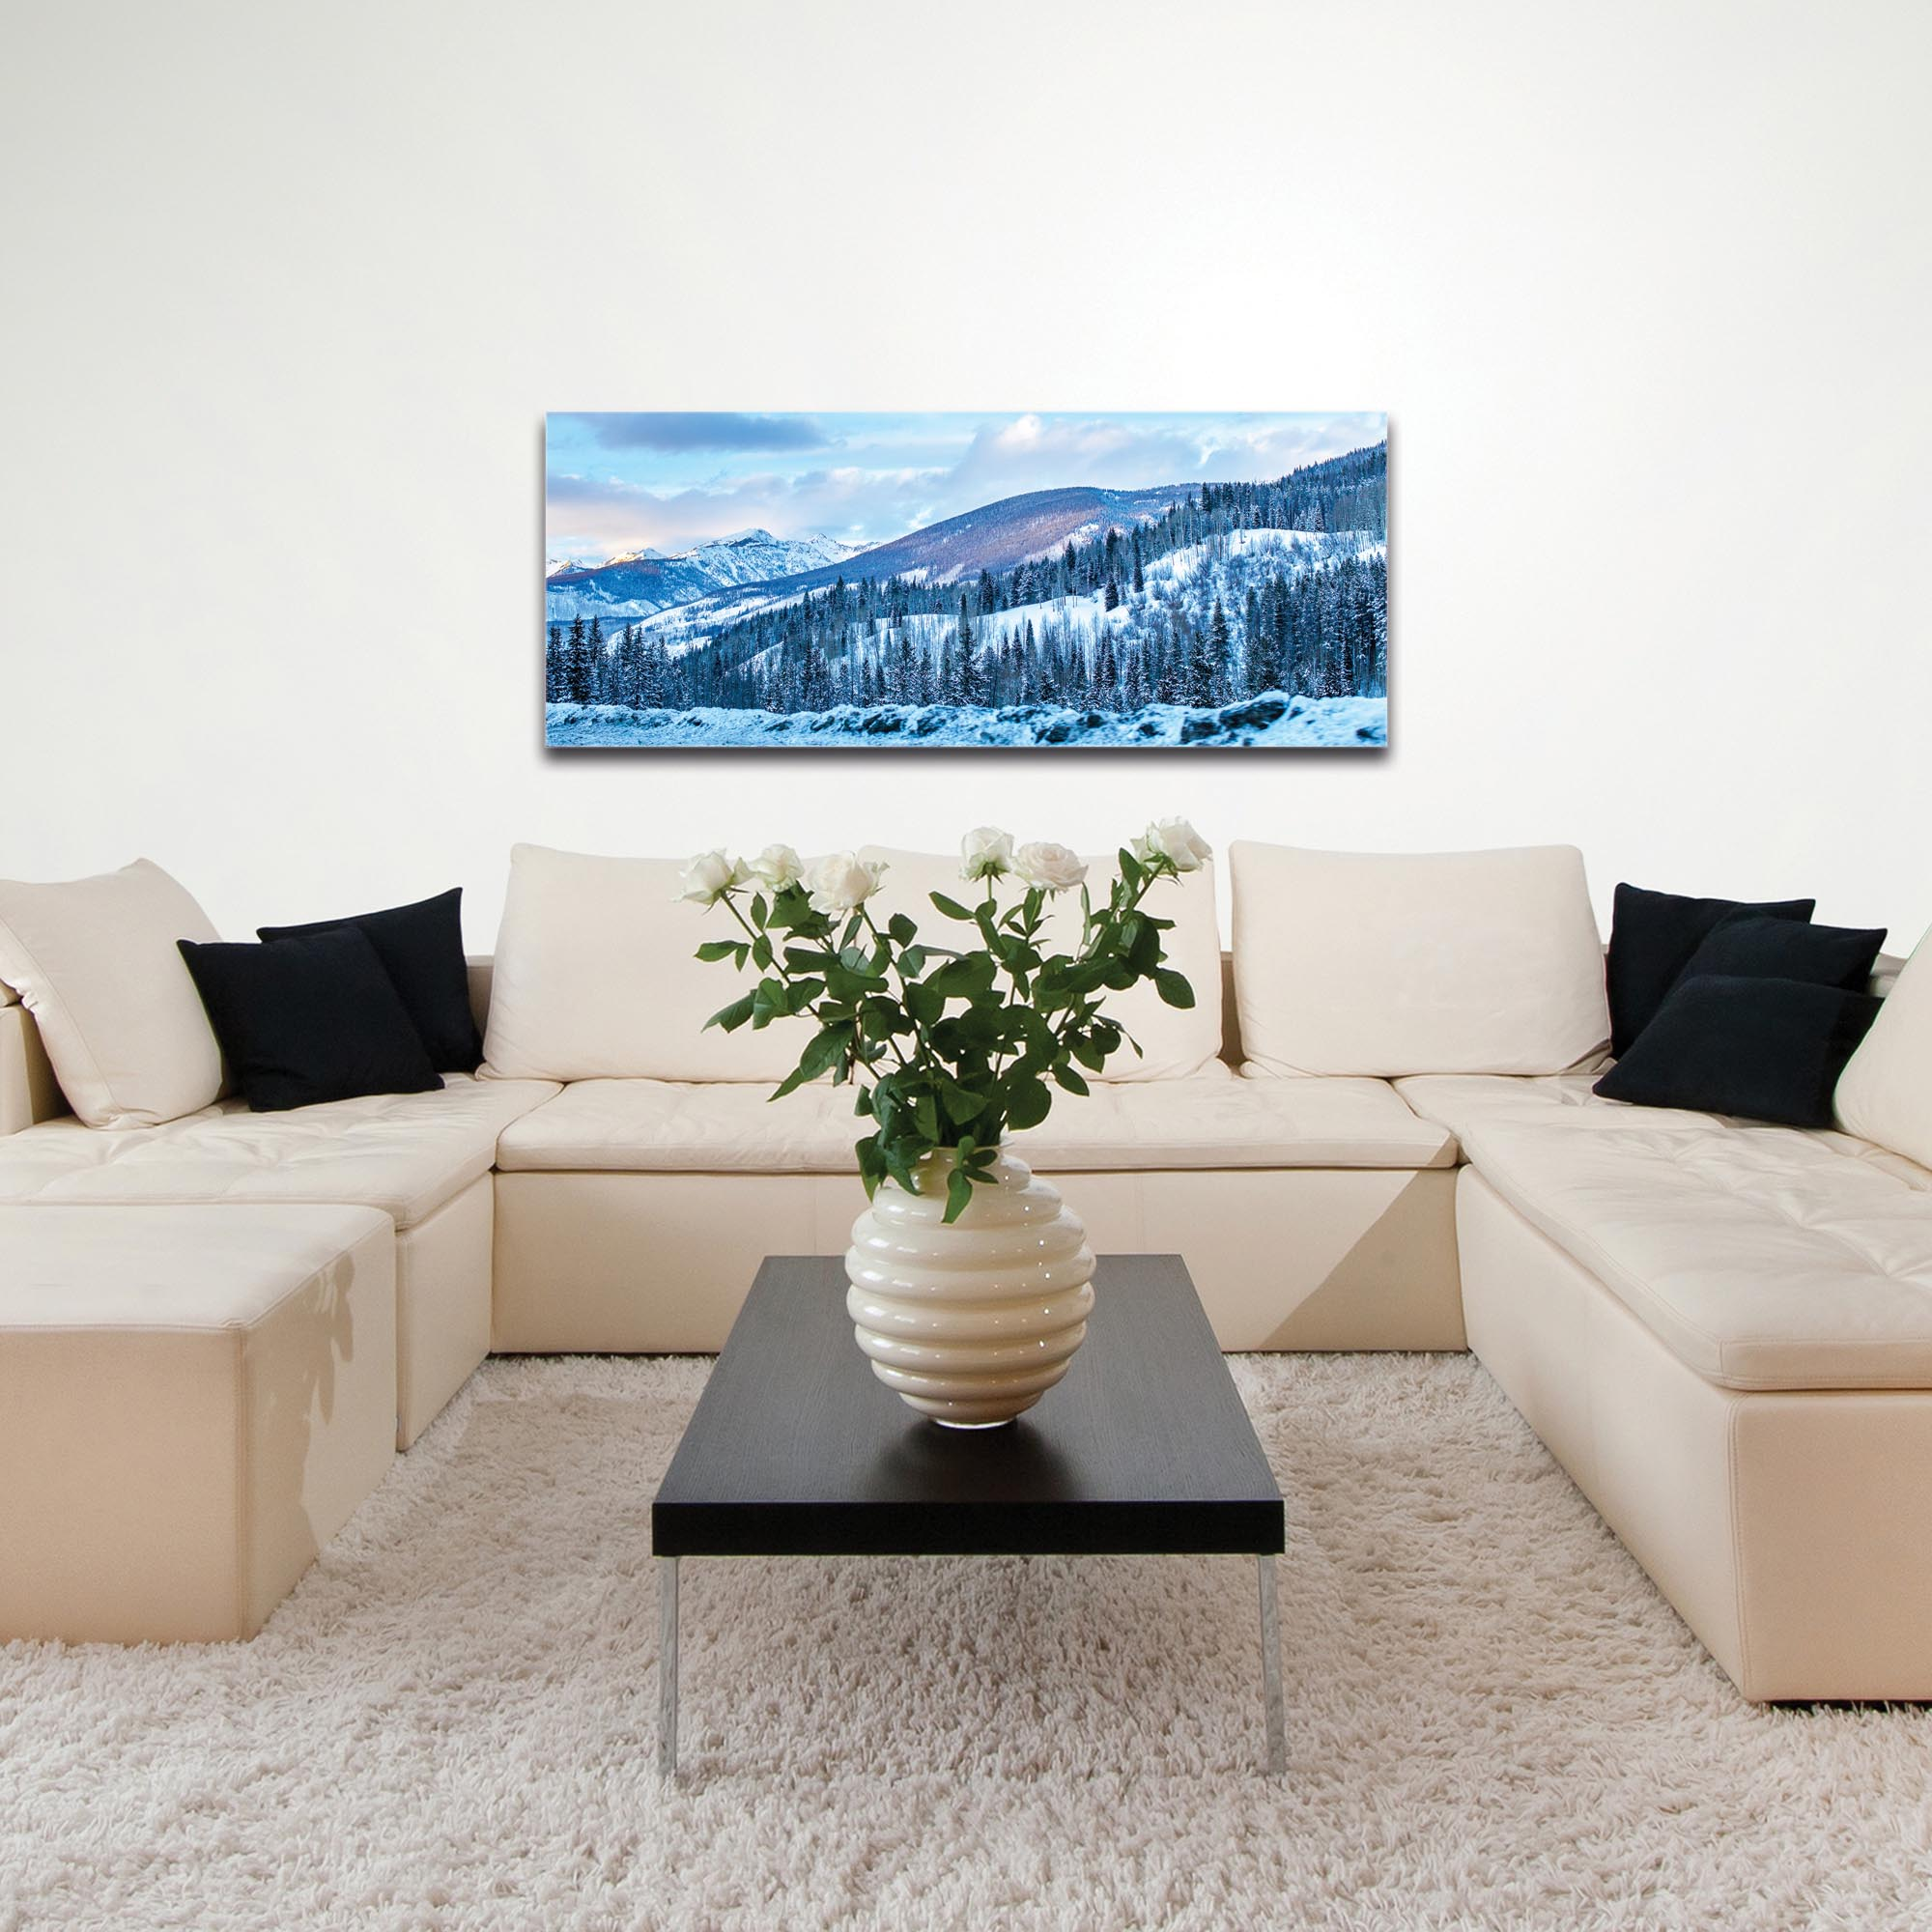 Landscape Photography 'The Slopes' - Winter Scene Art on Metal or Plexiglass - Image 3